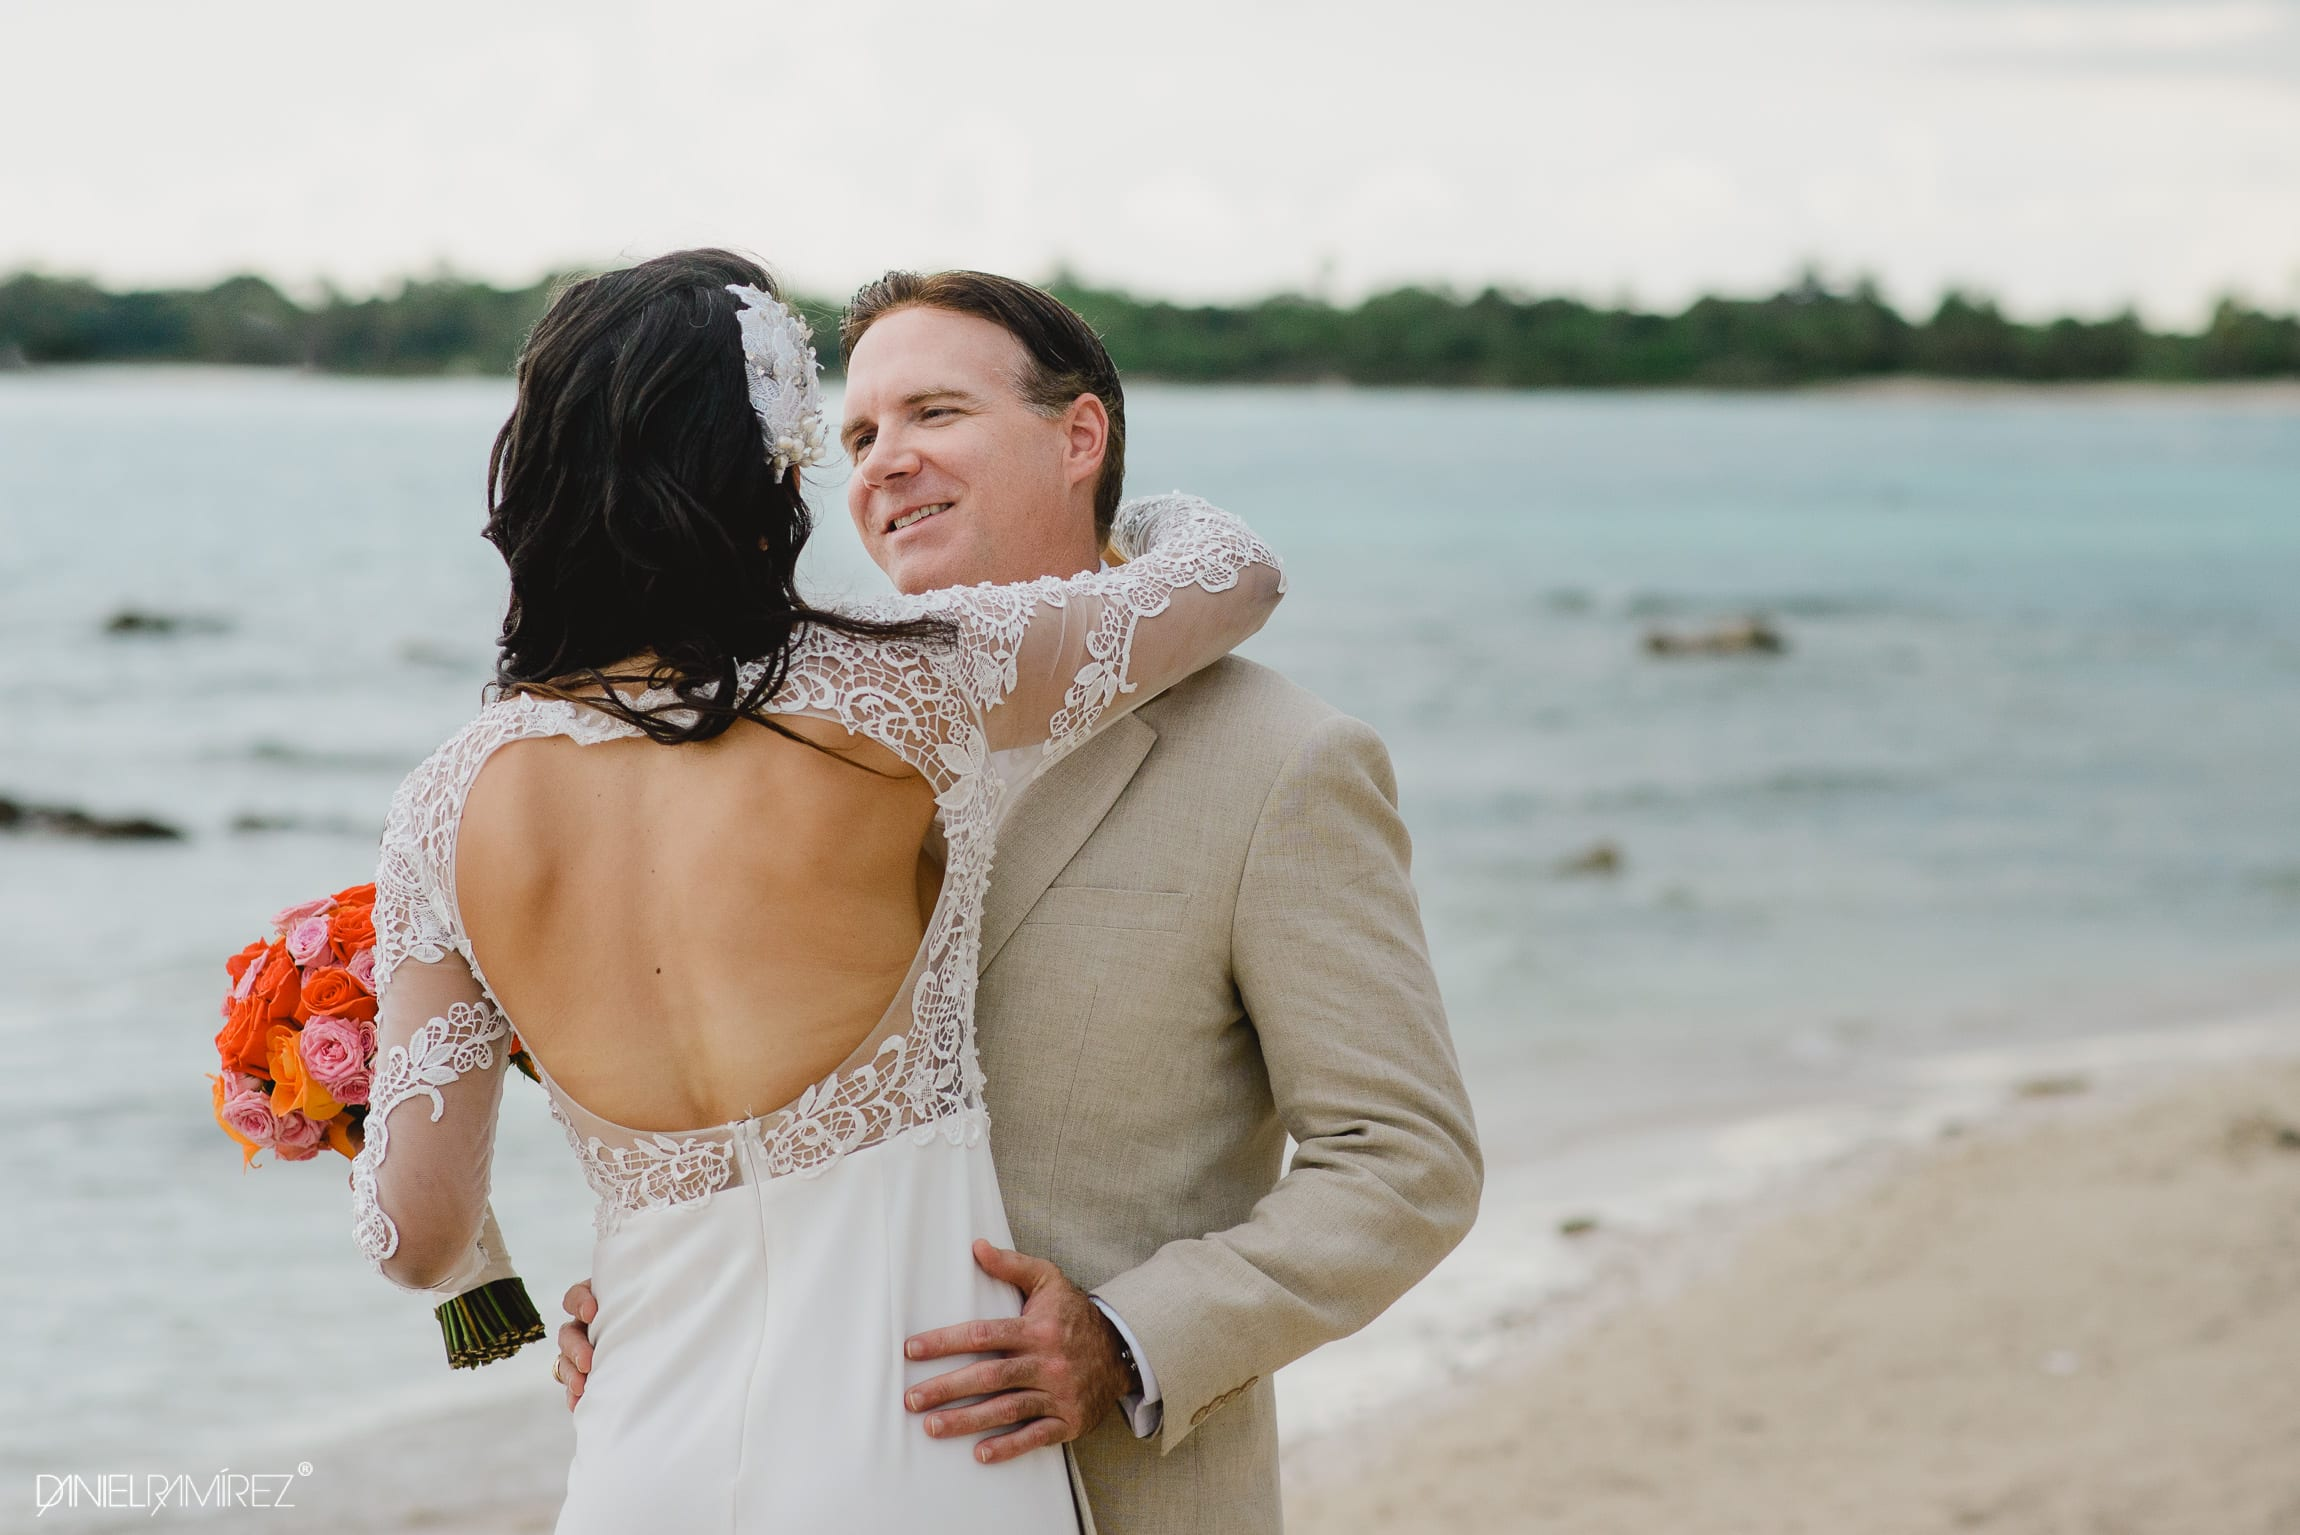 barcelo-wedding-photos-896